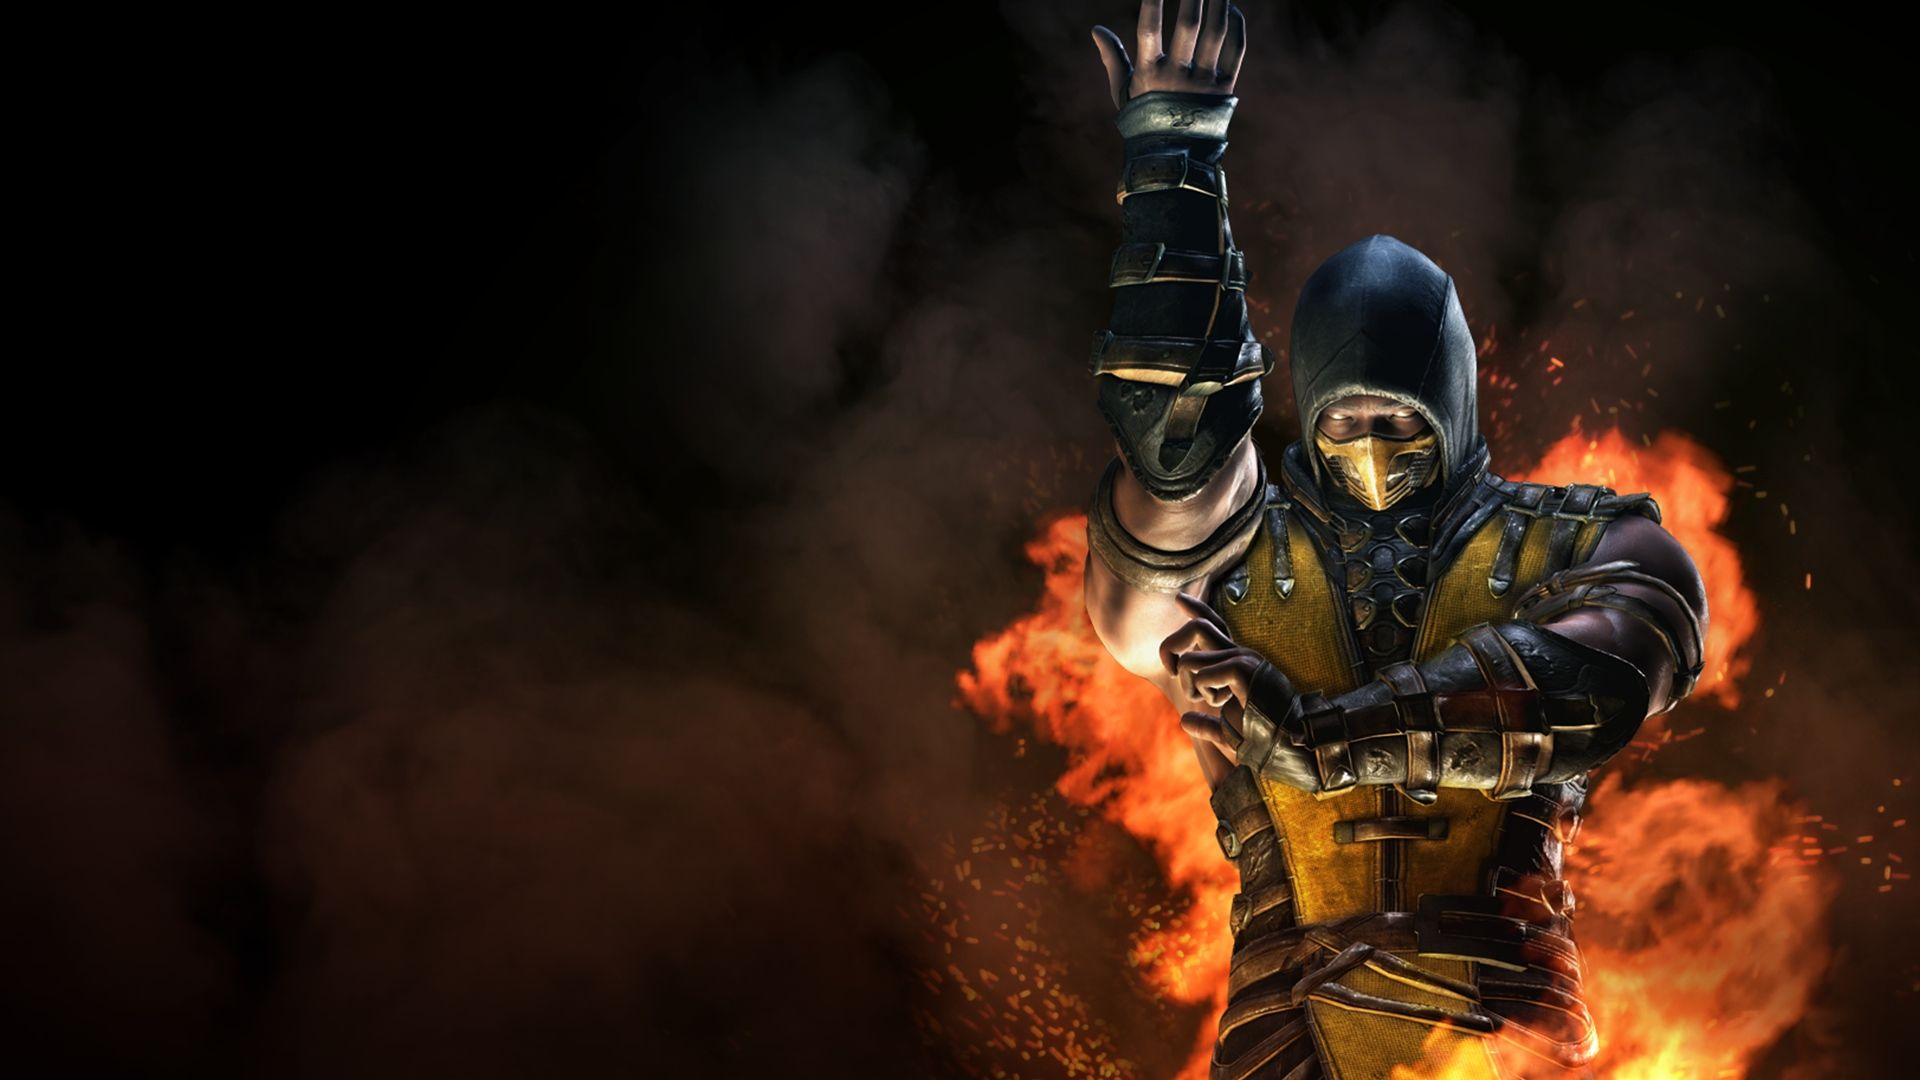 Mortal Kombat Scorpion Wallpapers - Top Free Mortal Kombat